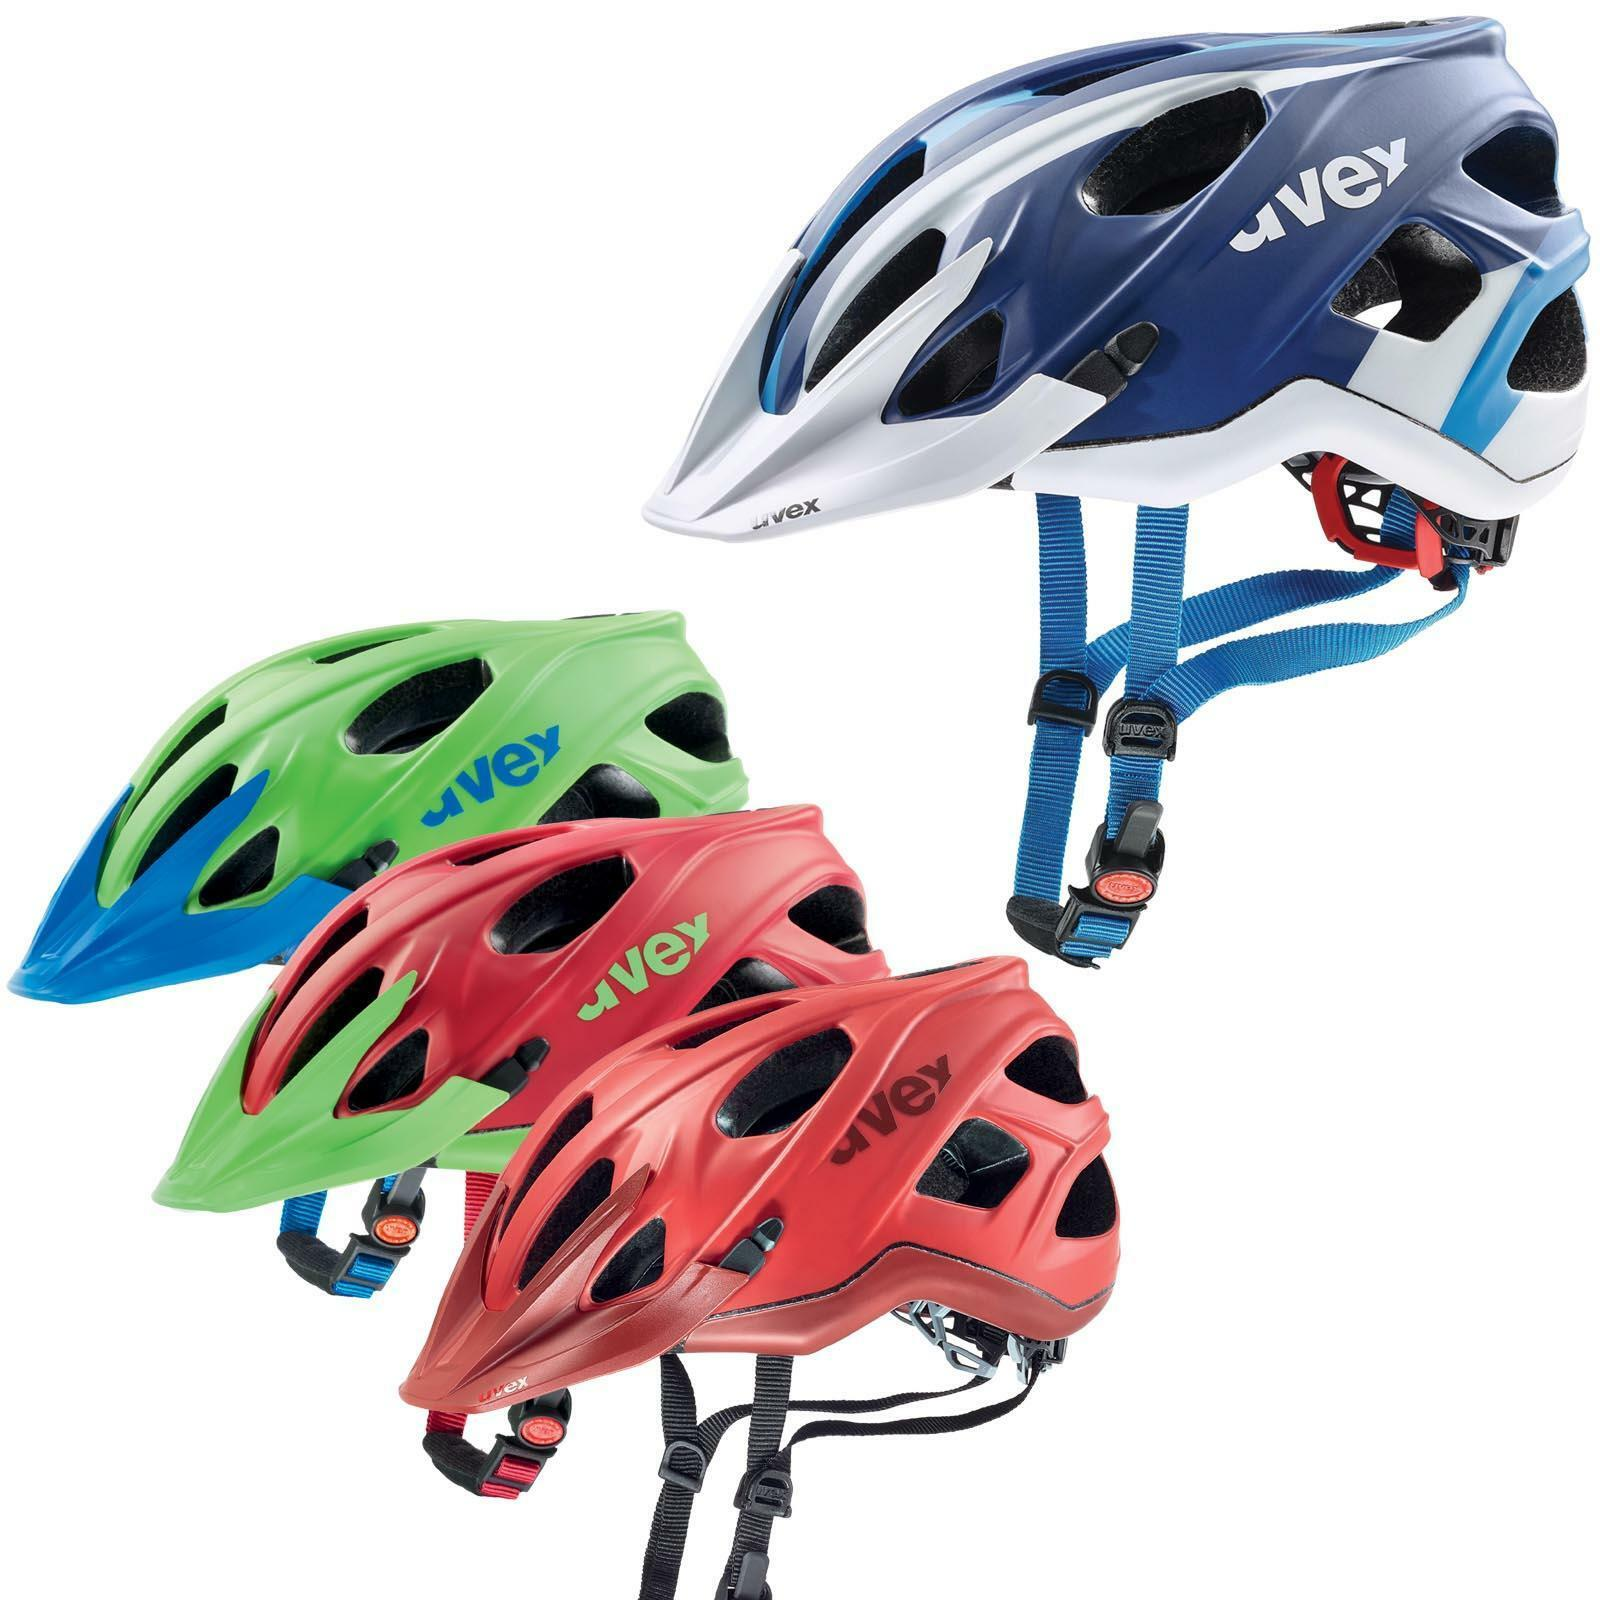 Uvex Stivo cc - Mountain Bike Helmet Allmountain-Style